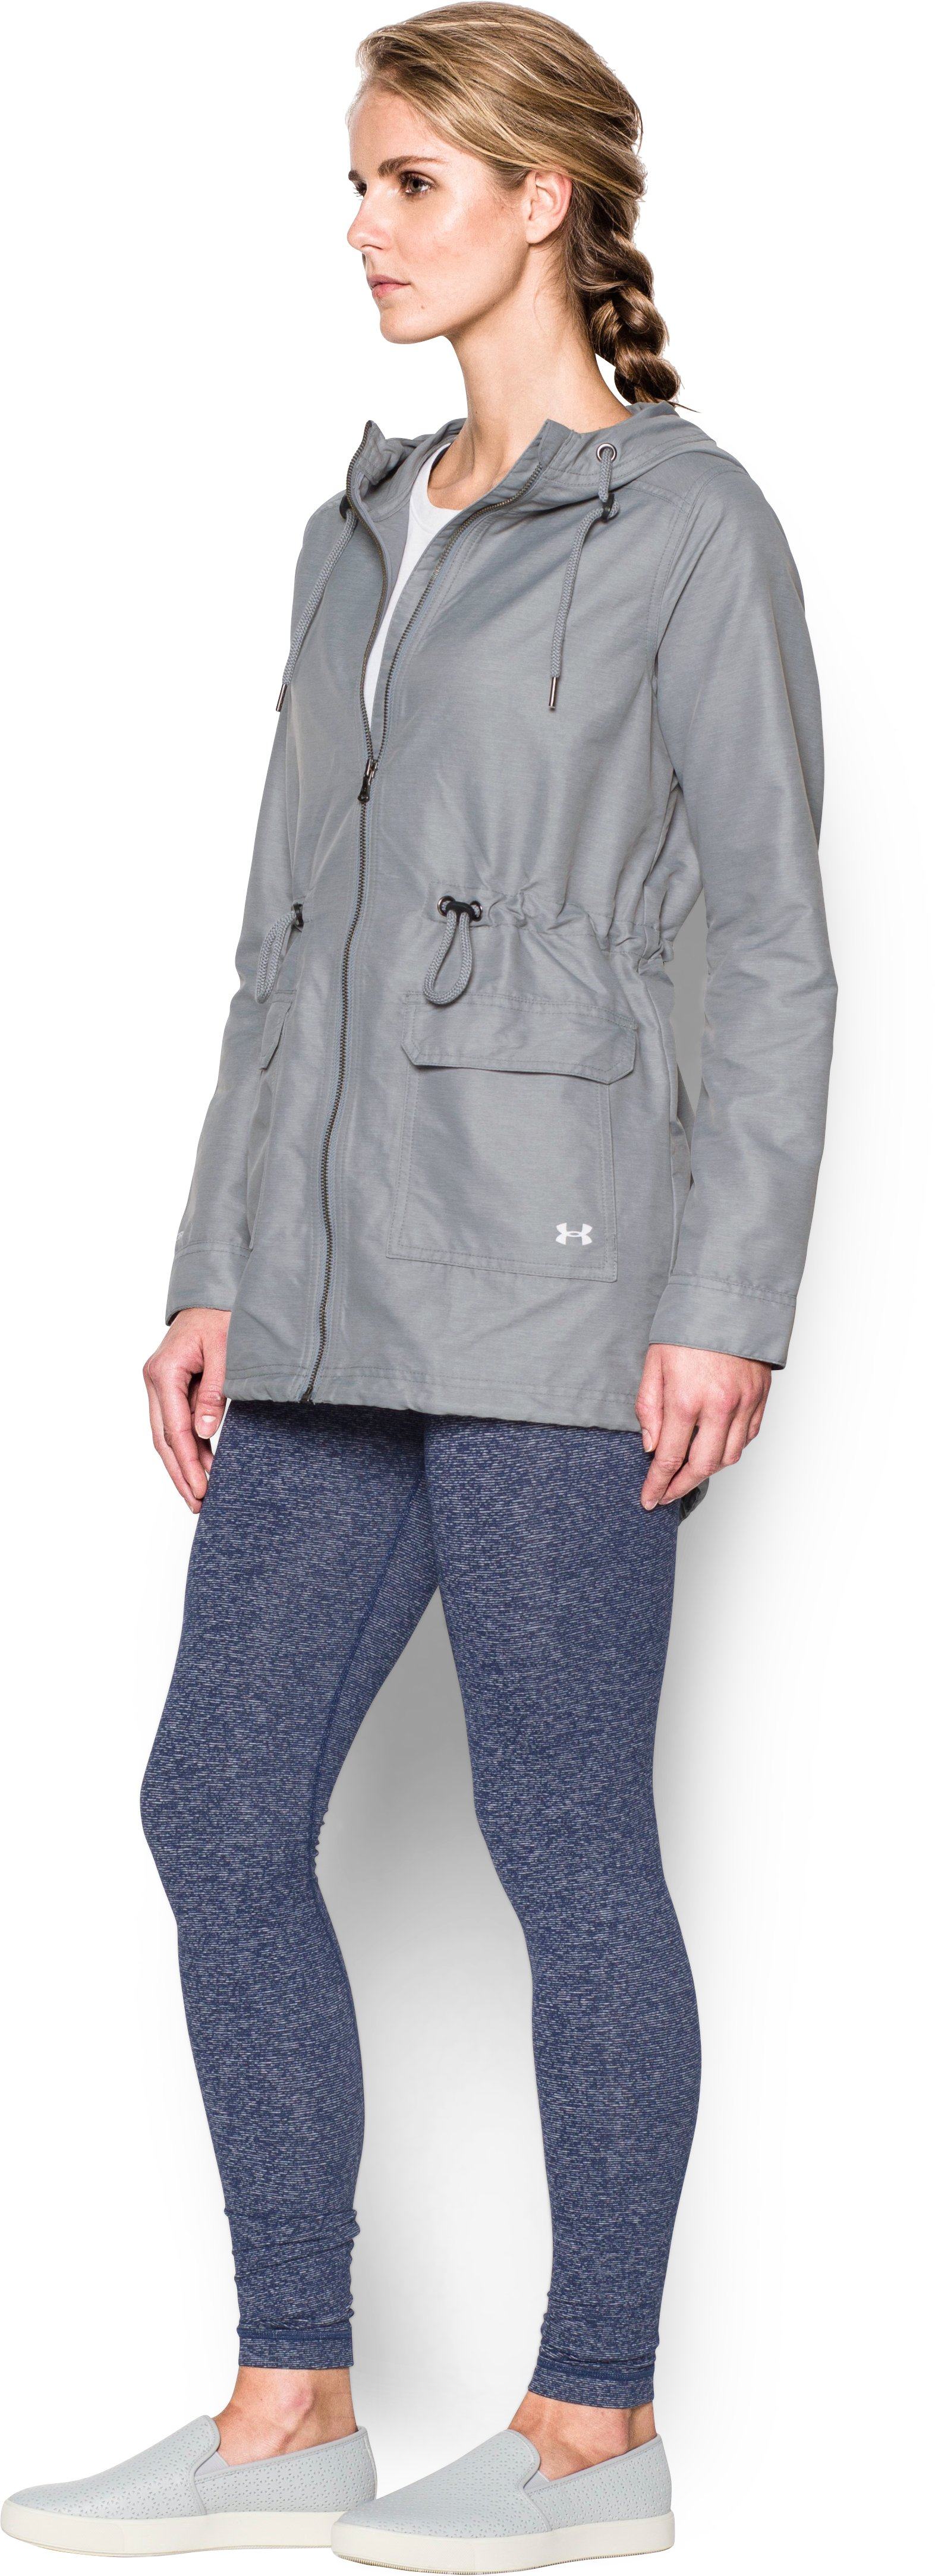 Women's Twill Rain Jacket, Steel